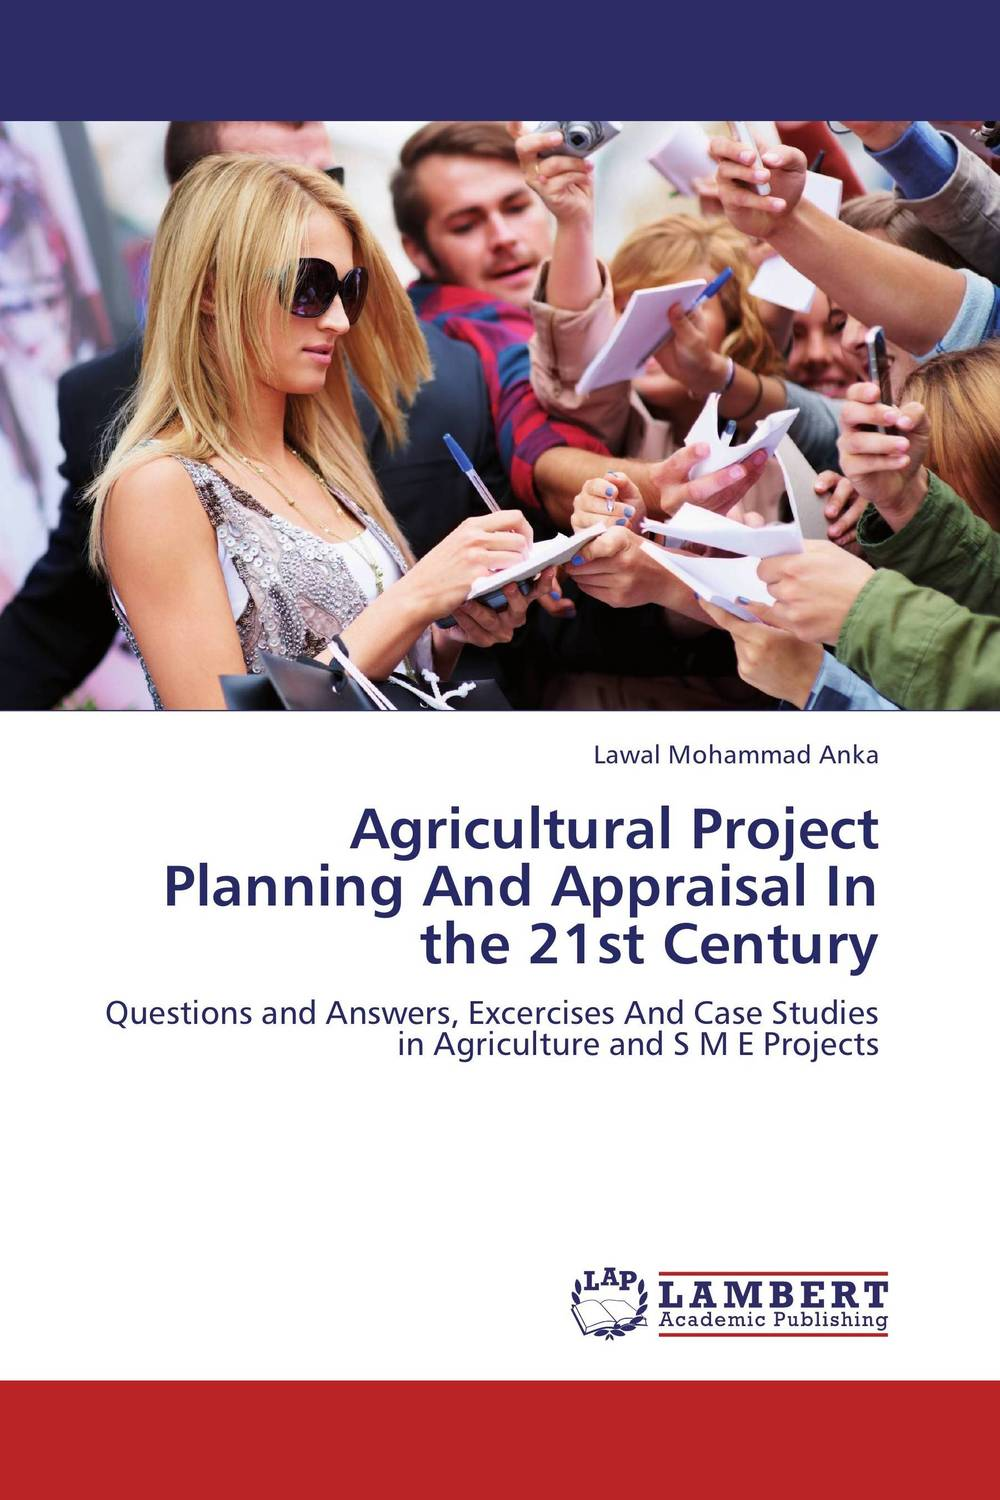 Agricultural Project Planning And Appraisal In the 21st Century working guide to reservoir exploration and appraisal